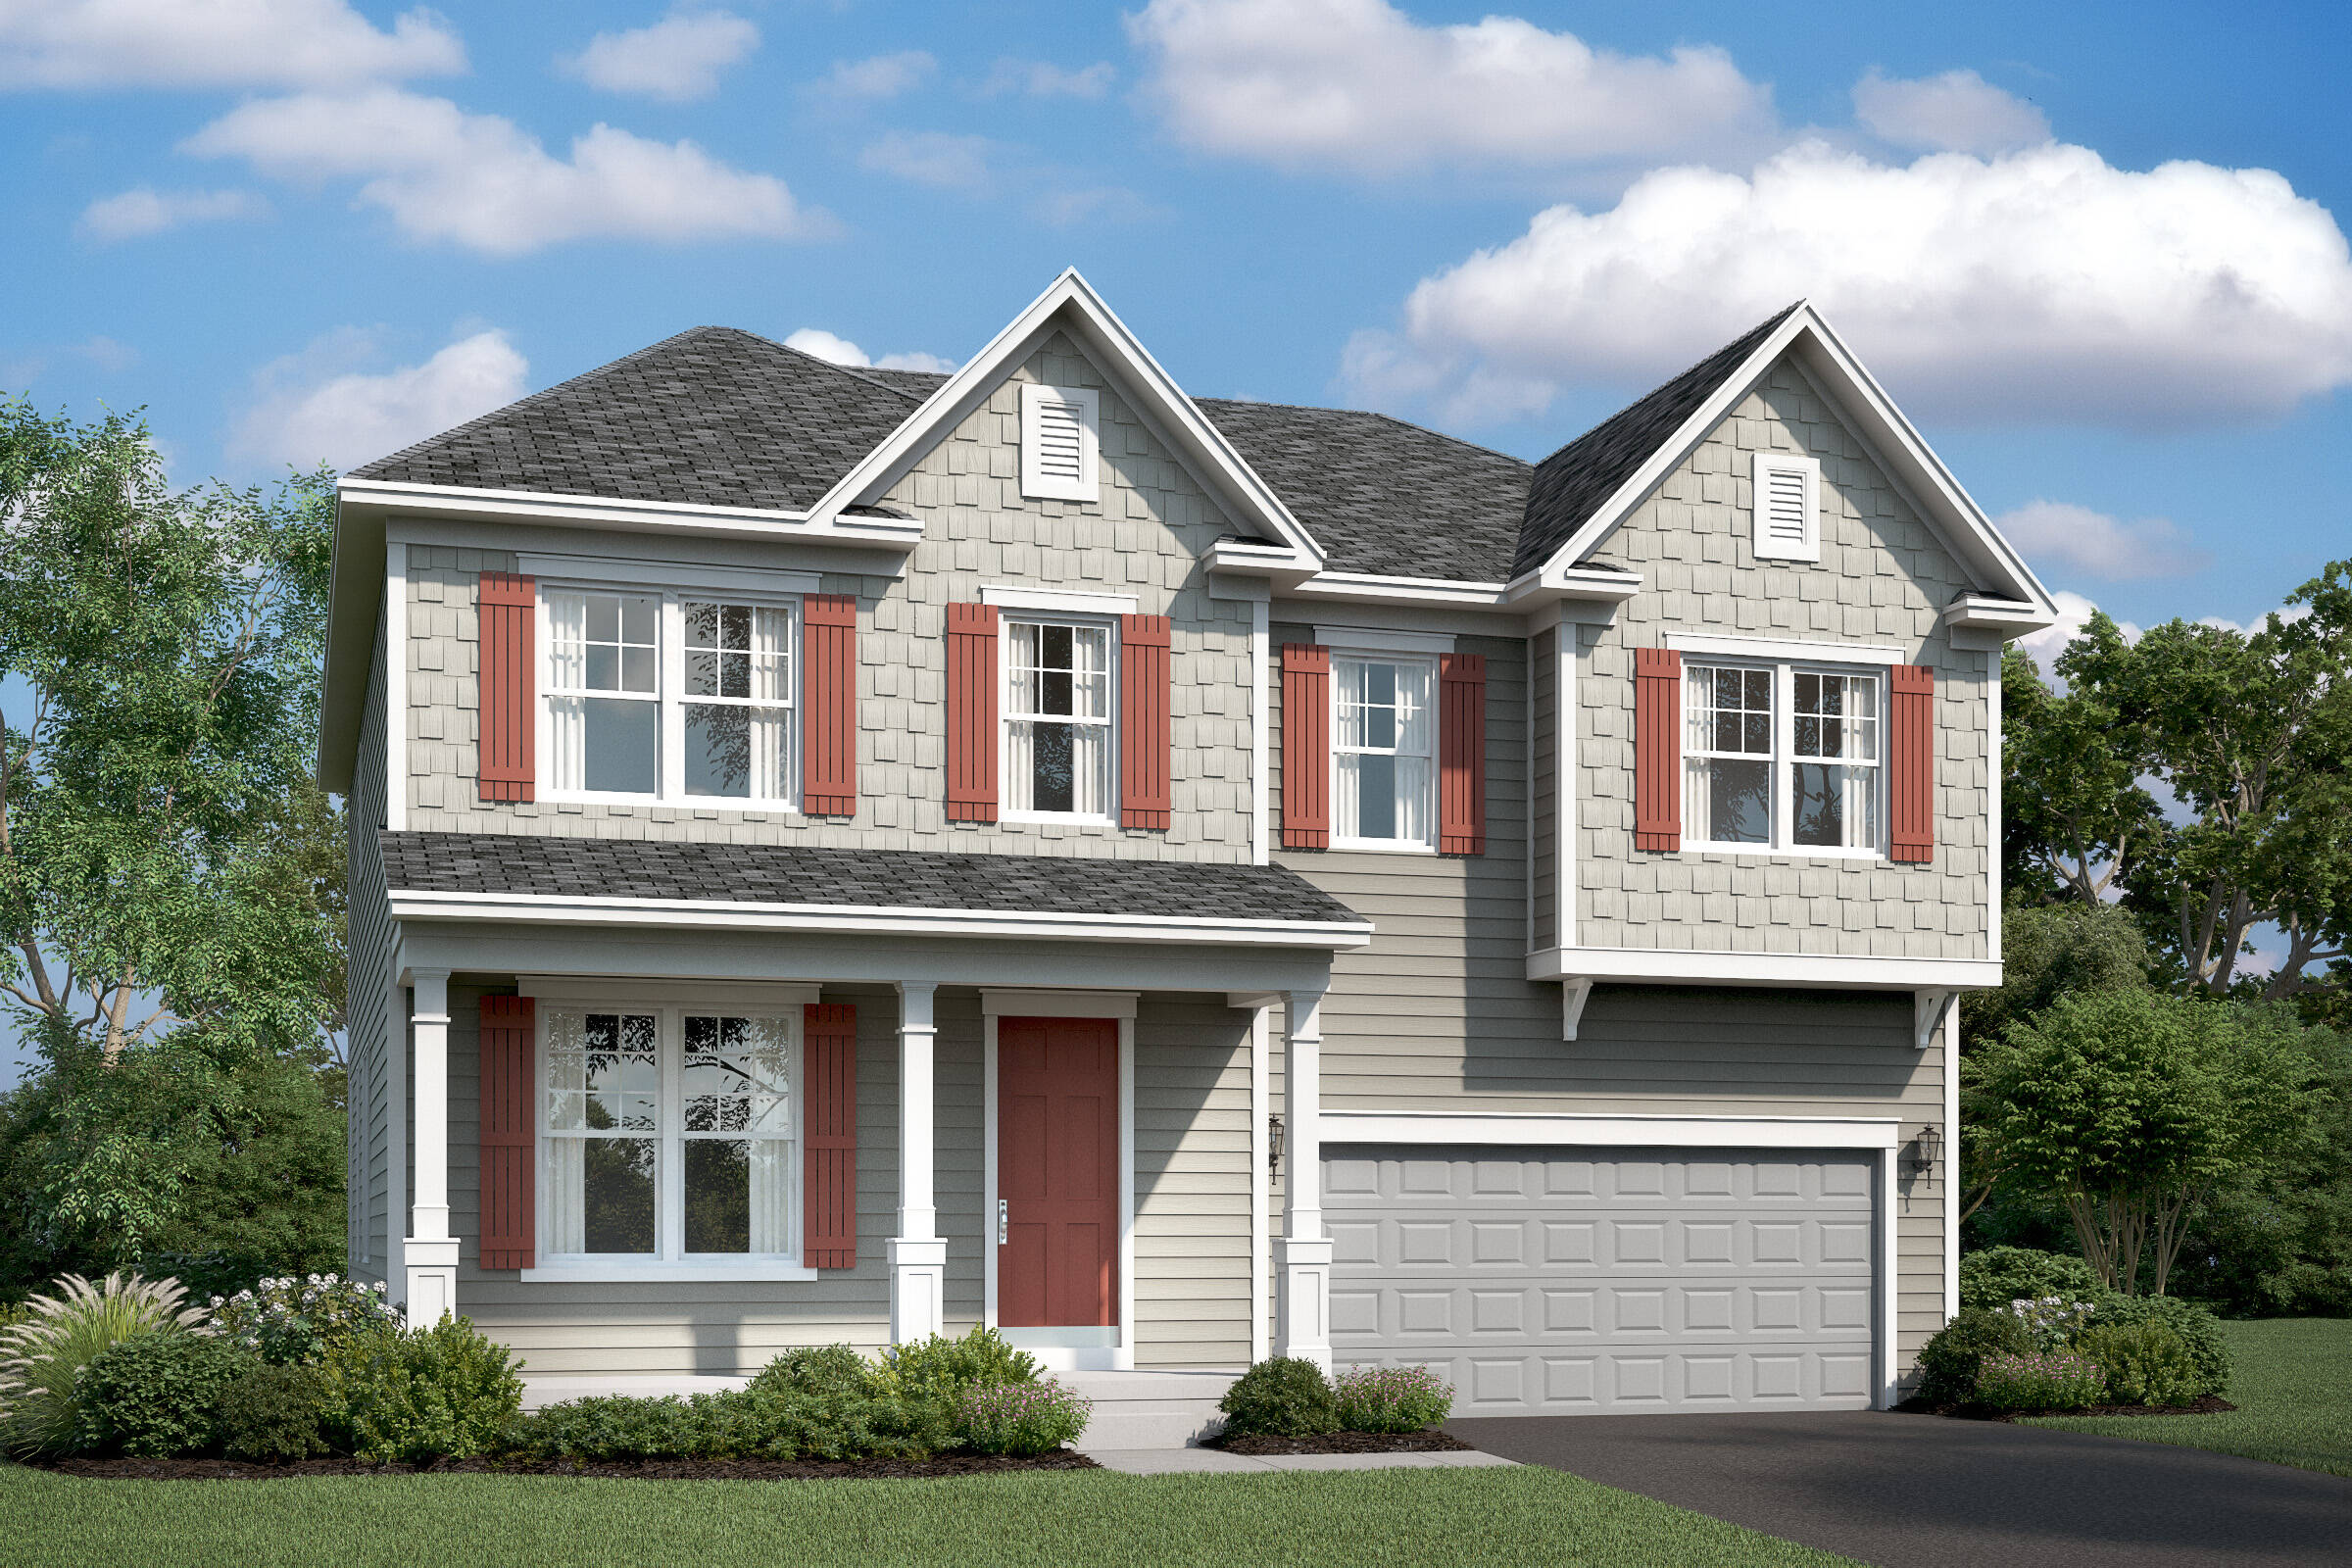 tomasen fs new homes at stone mill in maryland